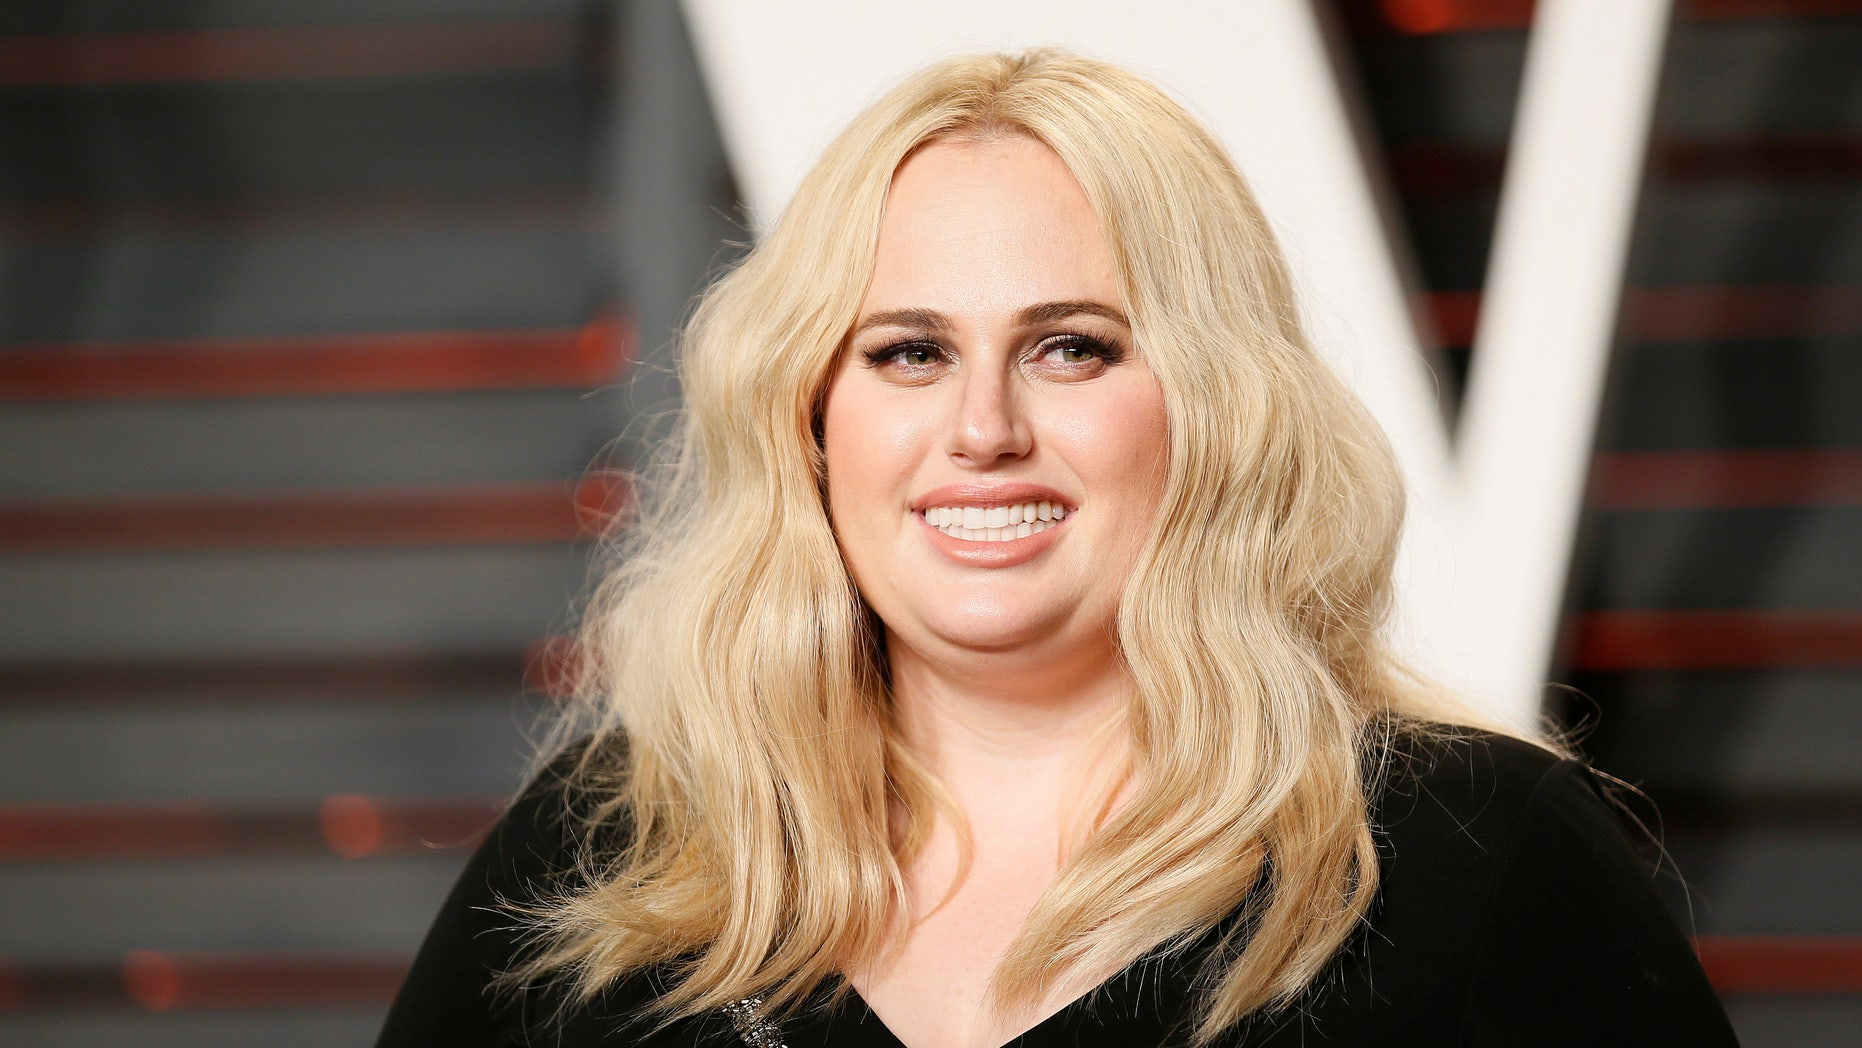 Actress Rebel Wilson lost a bid to keep most of her defamation payout.